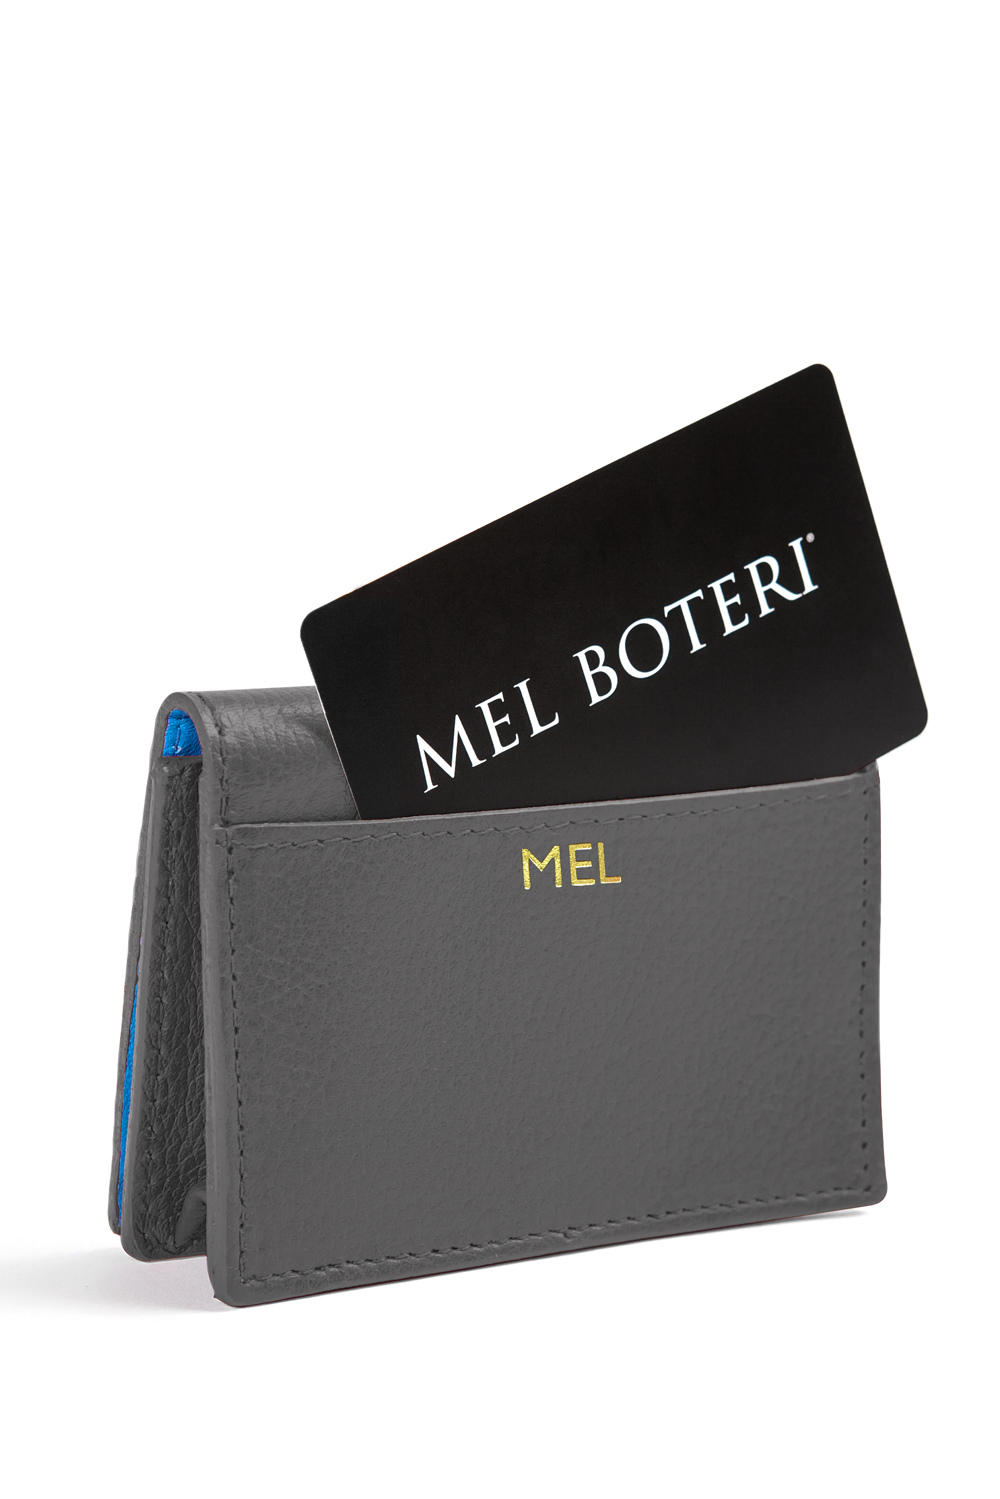 The Mel Boteri Leather Card Holder | Stone Leather With Gold Monogram | Mel Boteri Gift Ideas | Design Your Own